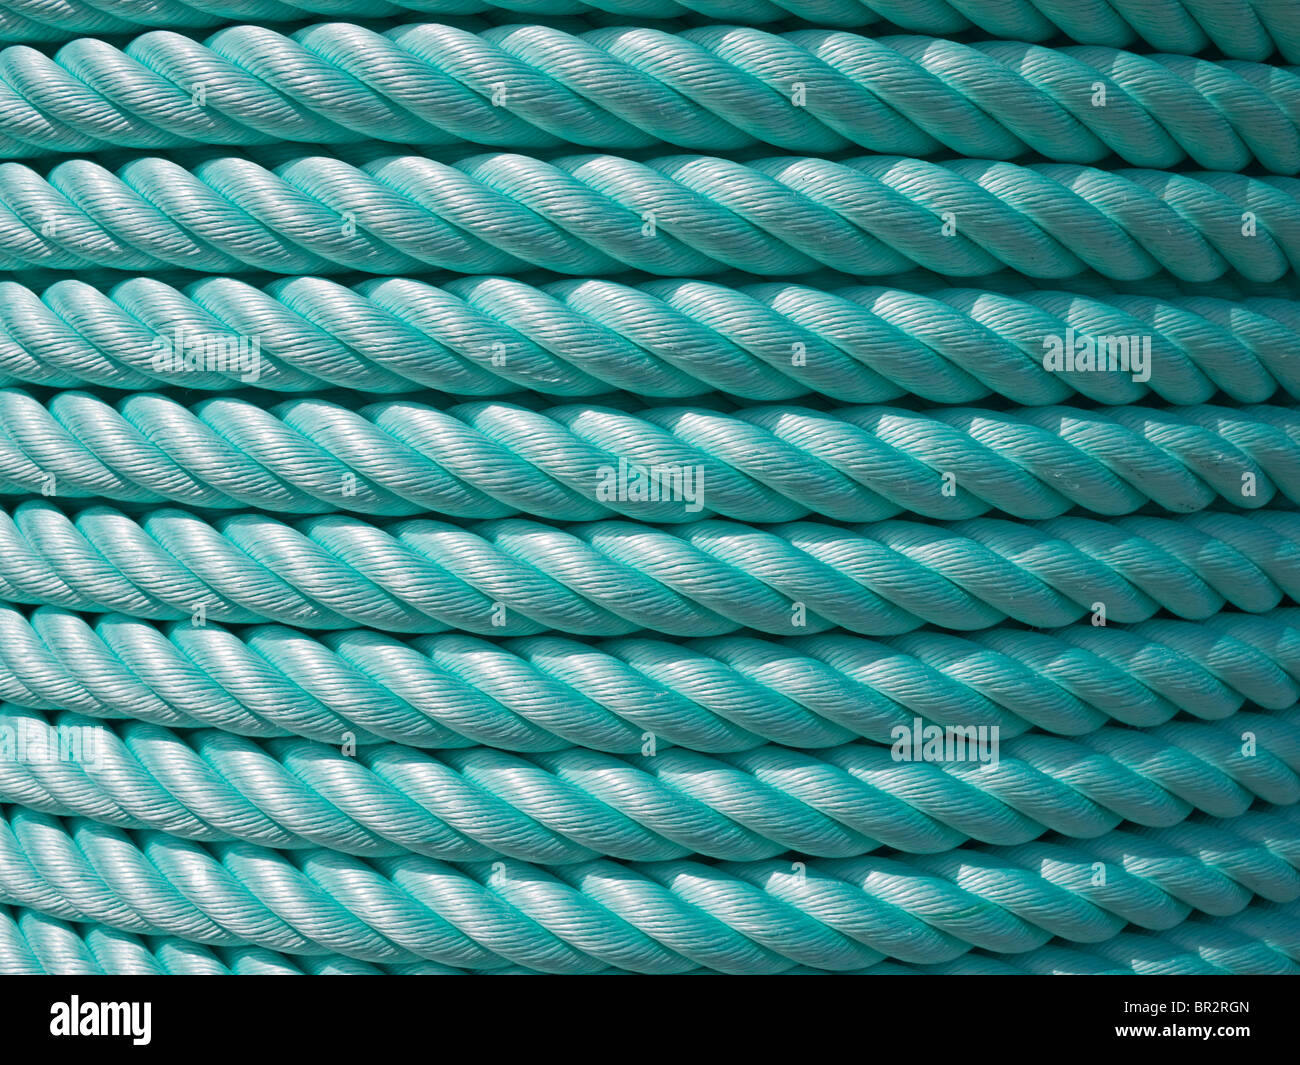 Close-up of thick green nylon rope cable - Stock Image